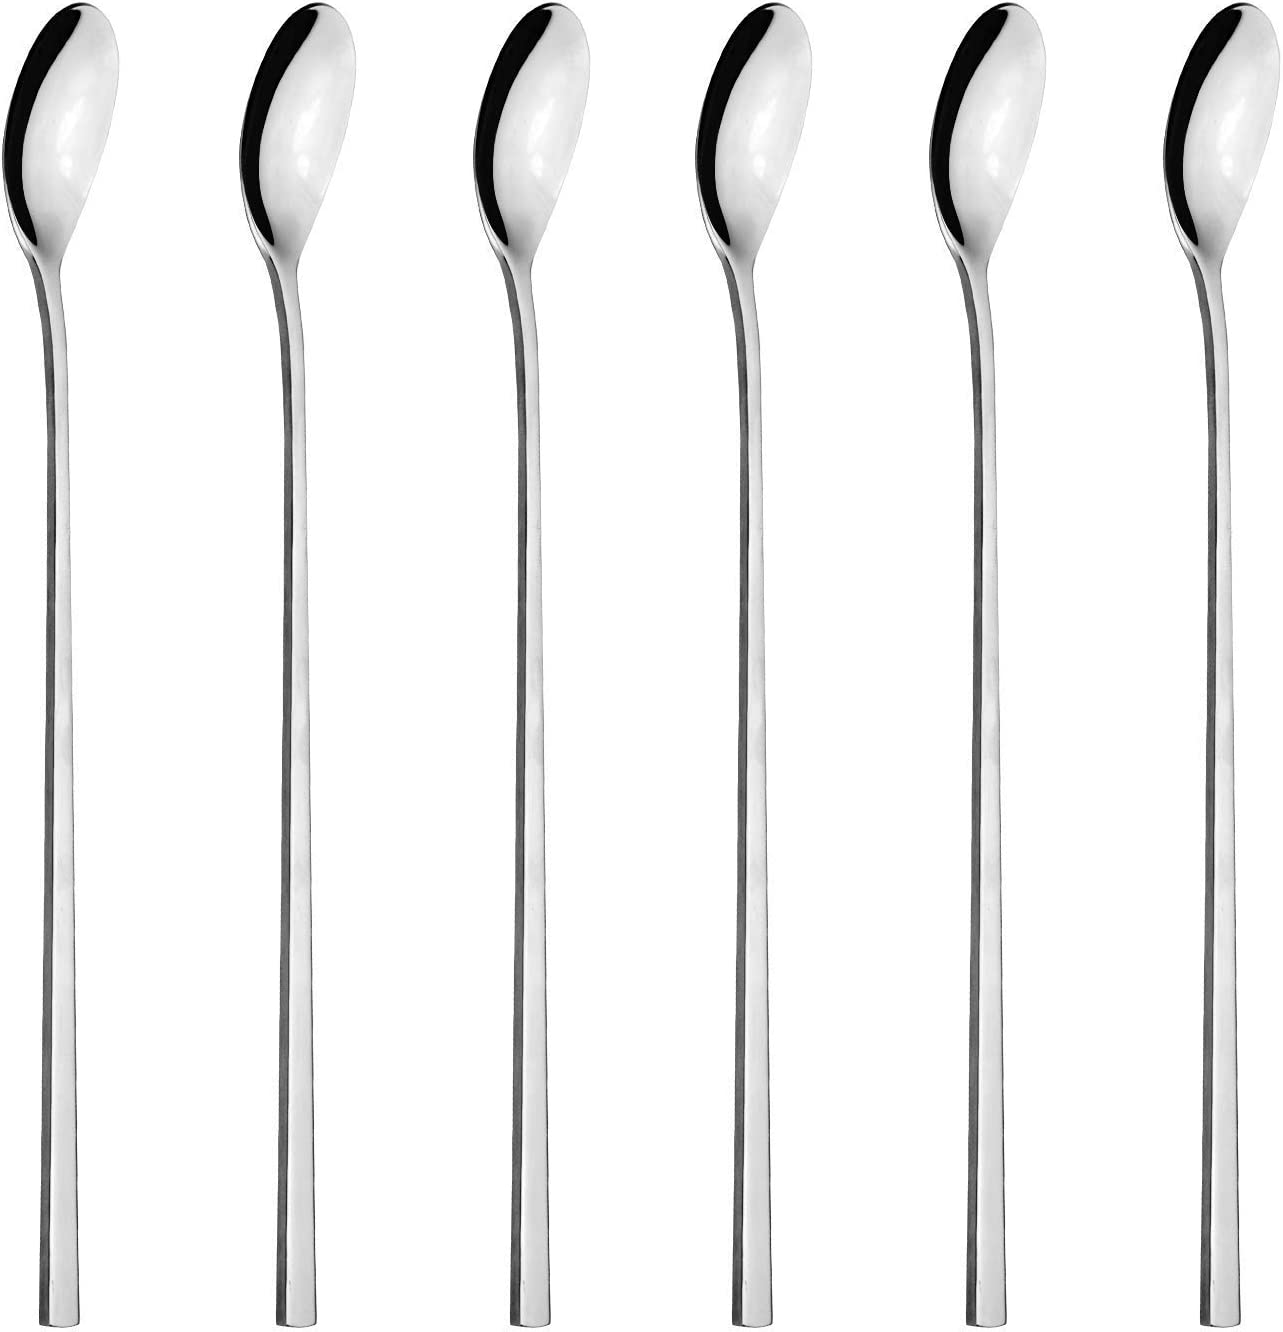 Espresso Ideal for Coffee Cafe Latte Hot Chocolate,Hot Drinks Dessert Long Handle Stainless Steel Spoon Pack of 6 Latte Spoons